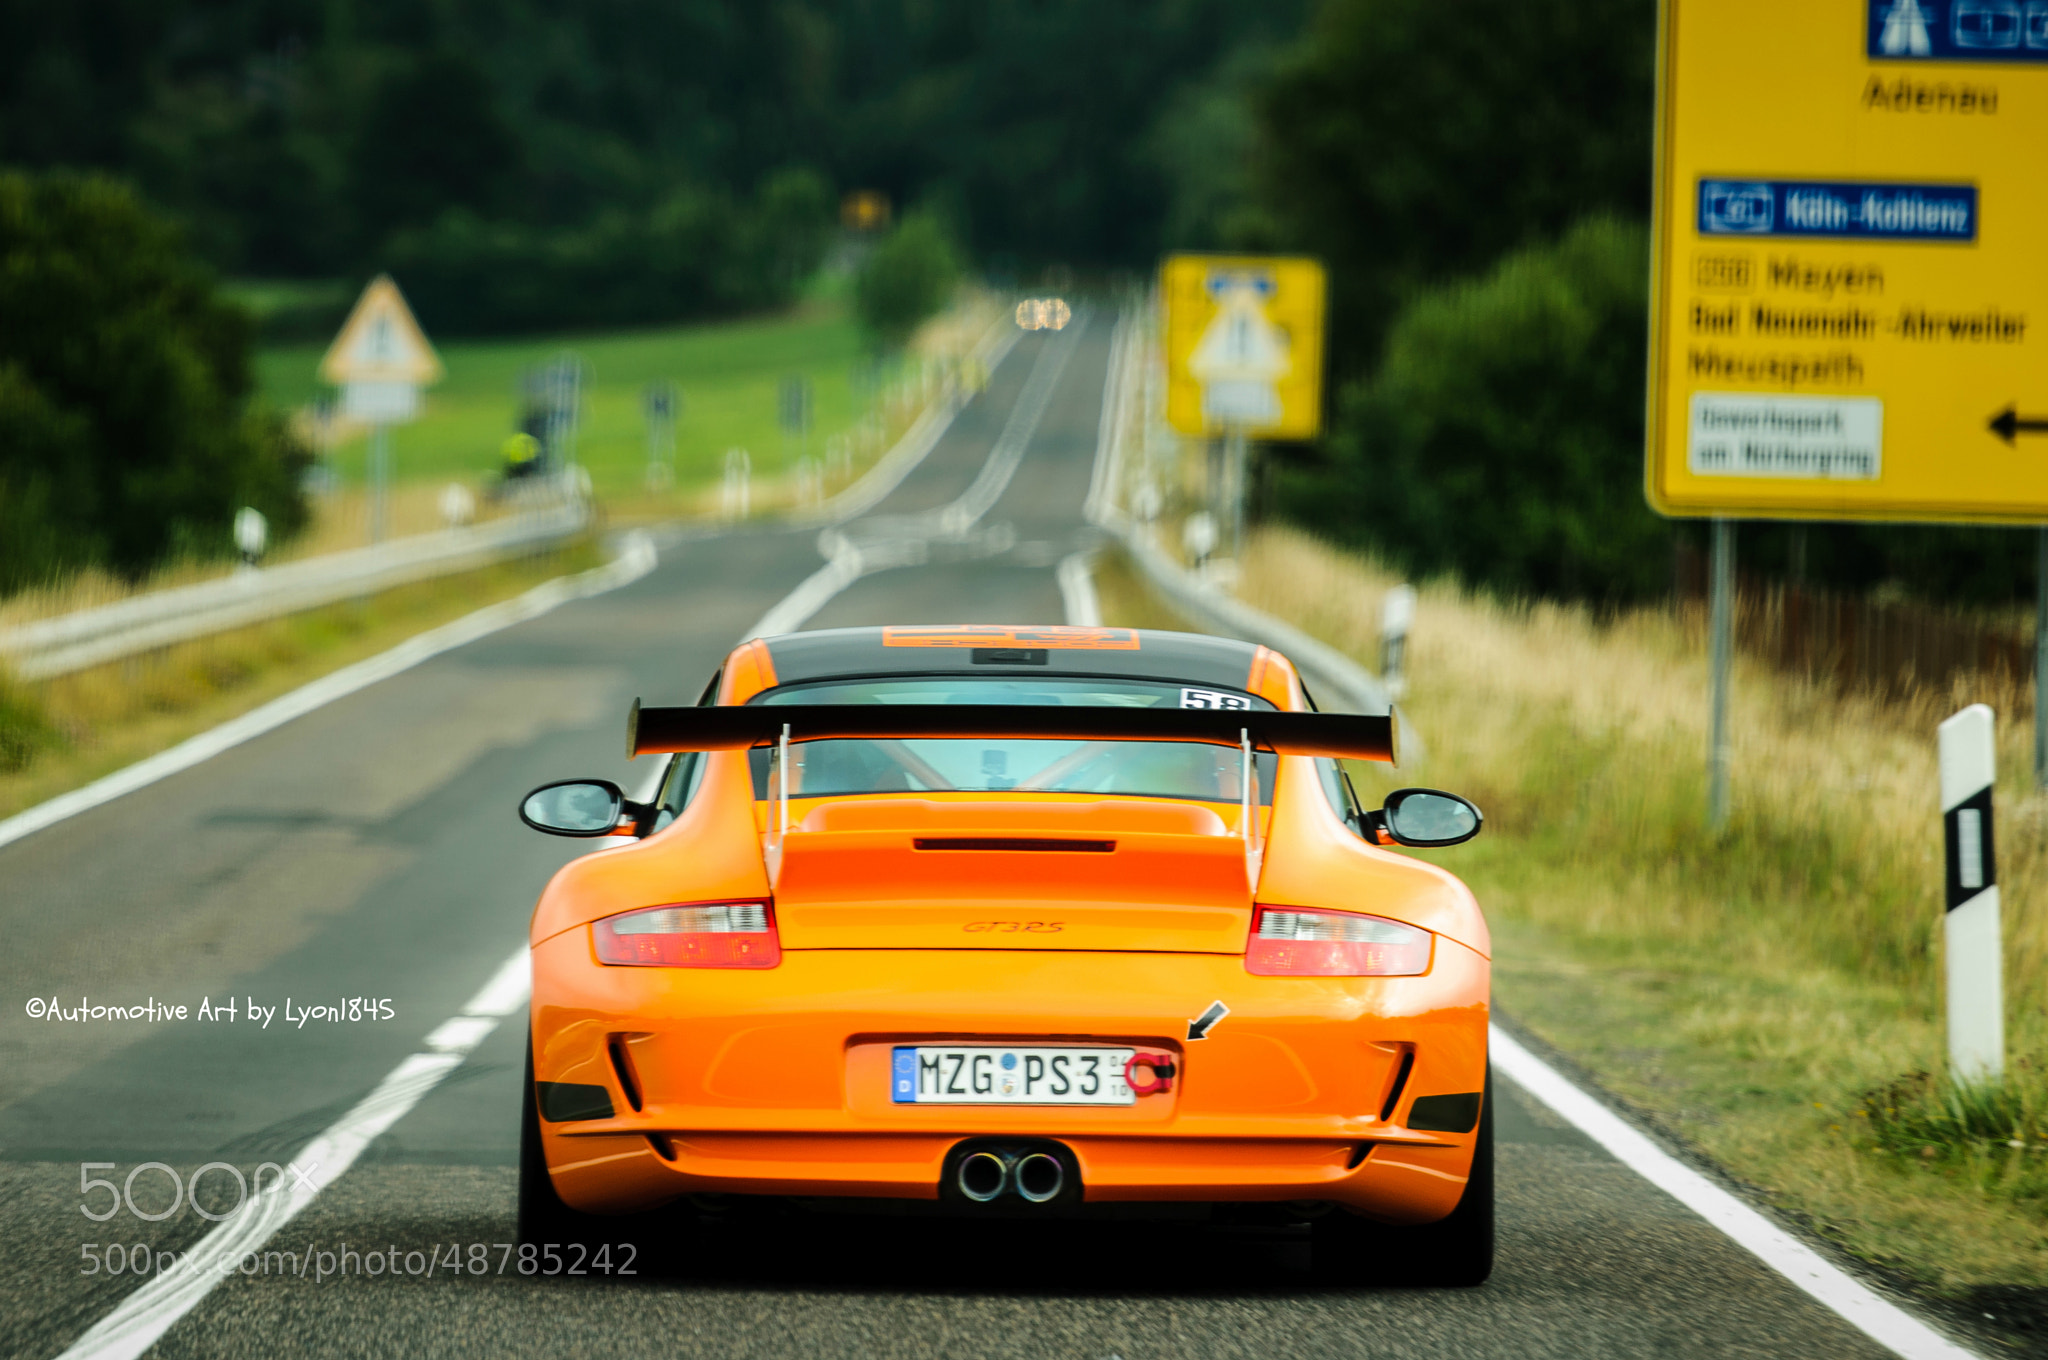 Photograph Porsche 997 GT3 RS Manthey by lyon1845 on 500px